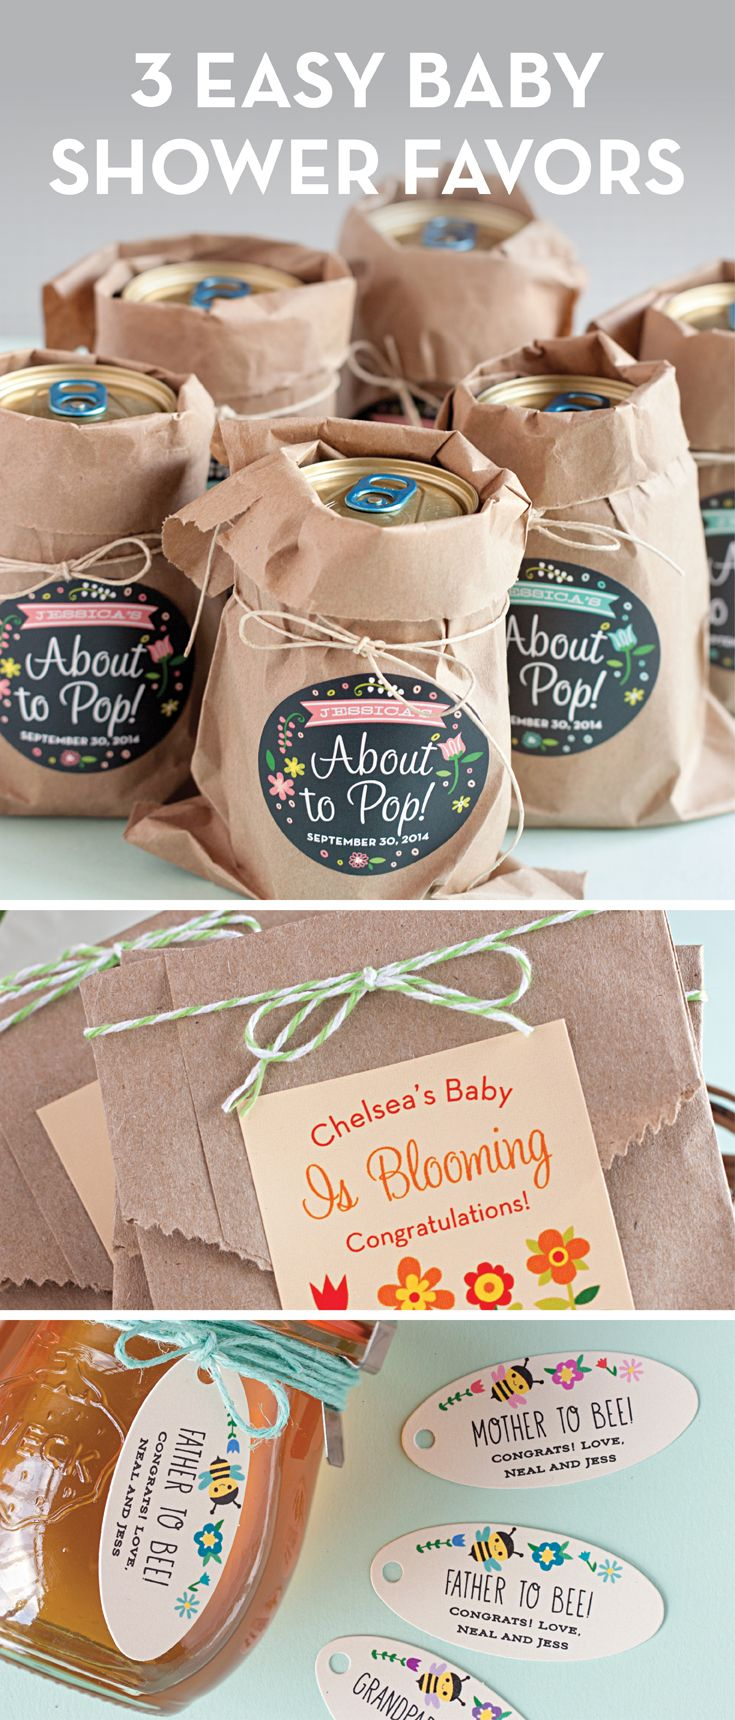 3 Easy Baby Shower Favor Ideas Baby Shower Favors Easy Simple